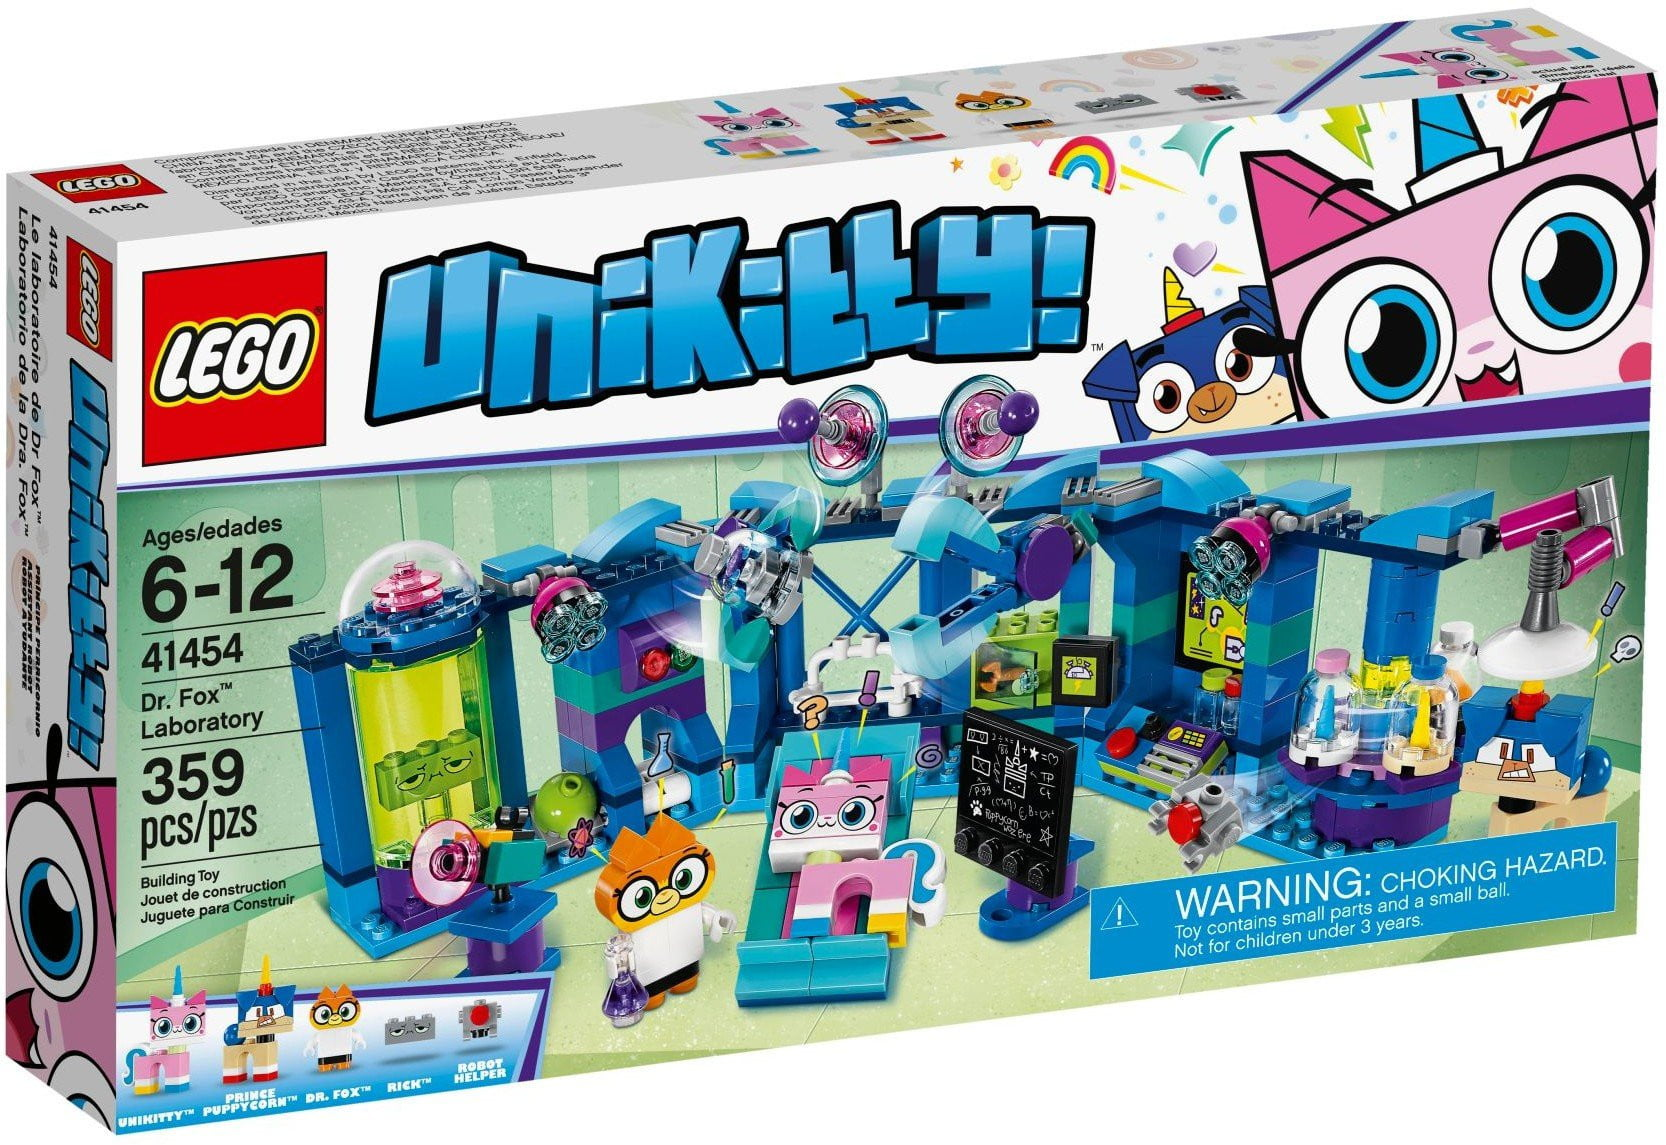 Lego - UniKitty יוניקיטי - 41454 - Dr. Fox Laboratory - TheBrick.co.il